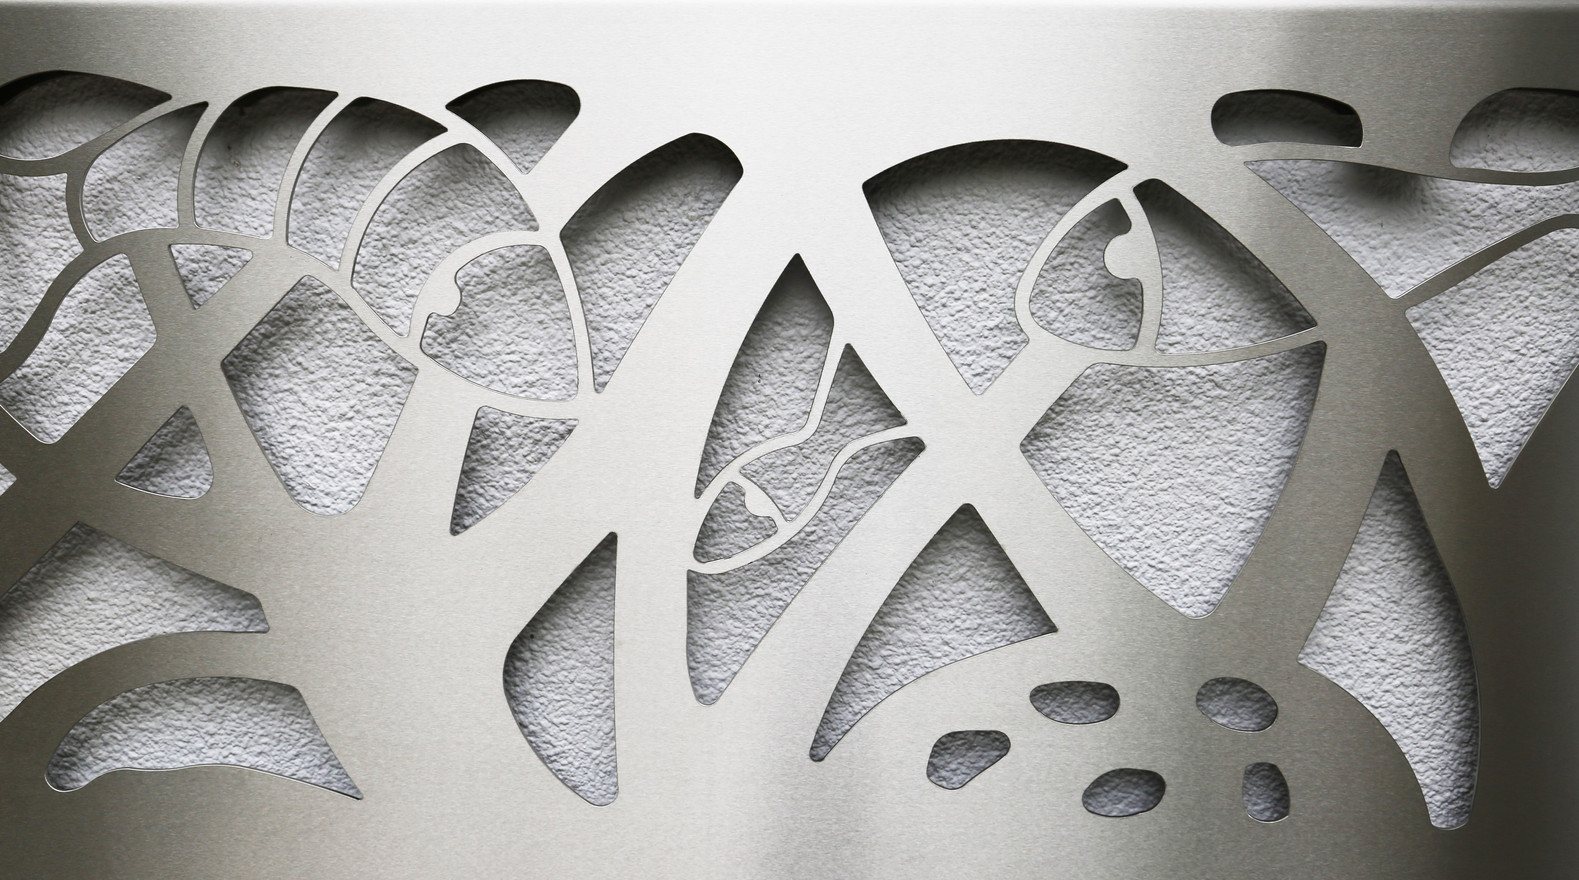 Detail of Stainless steel panel